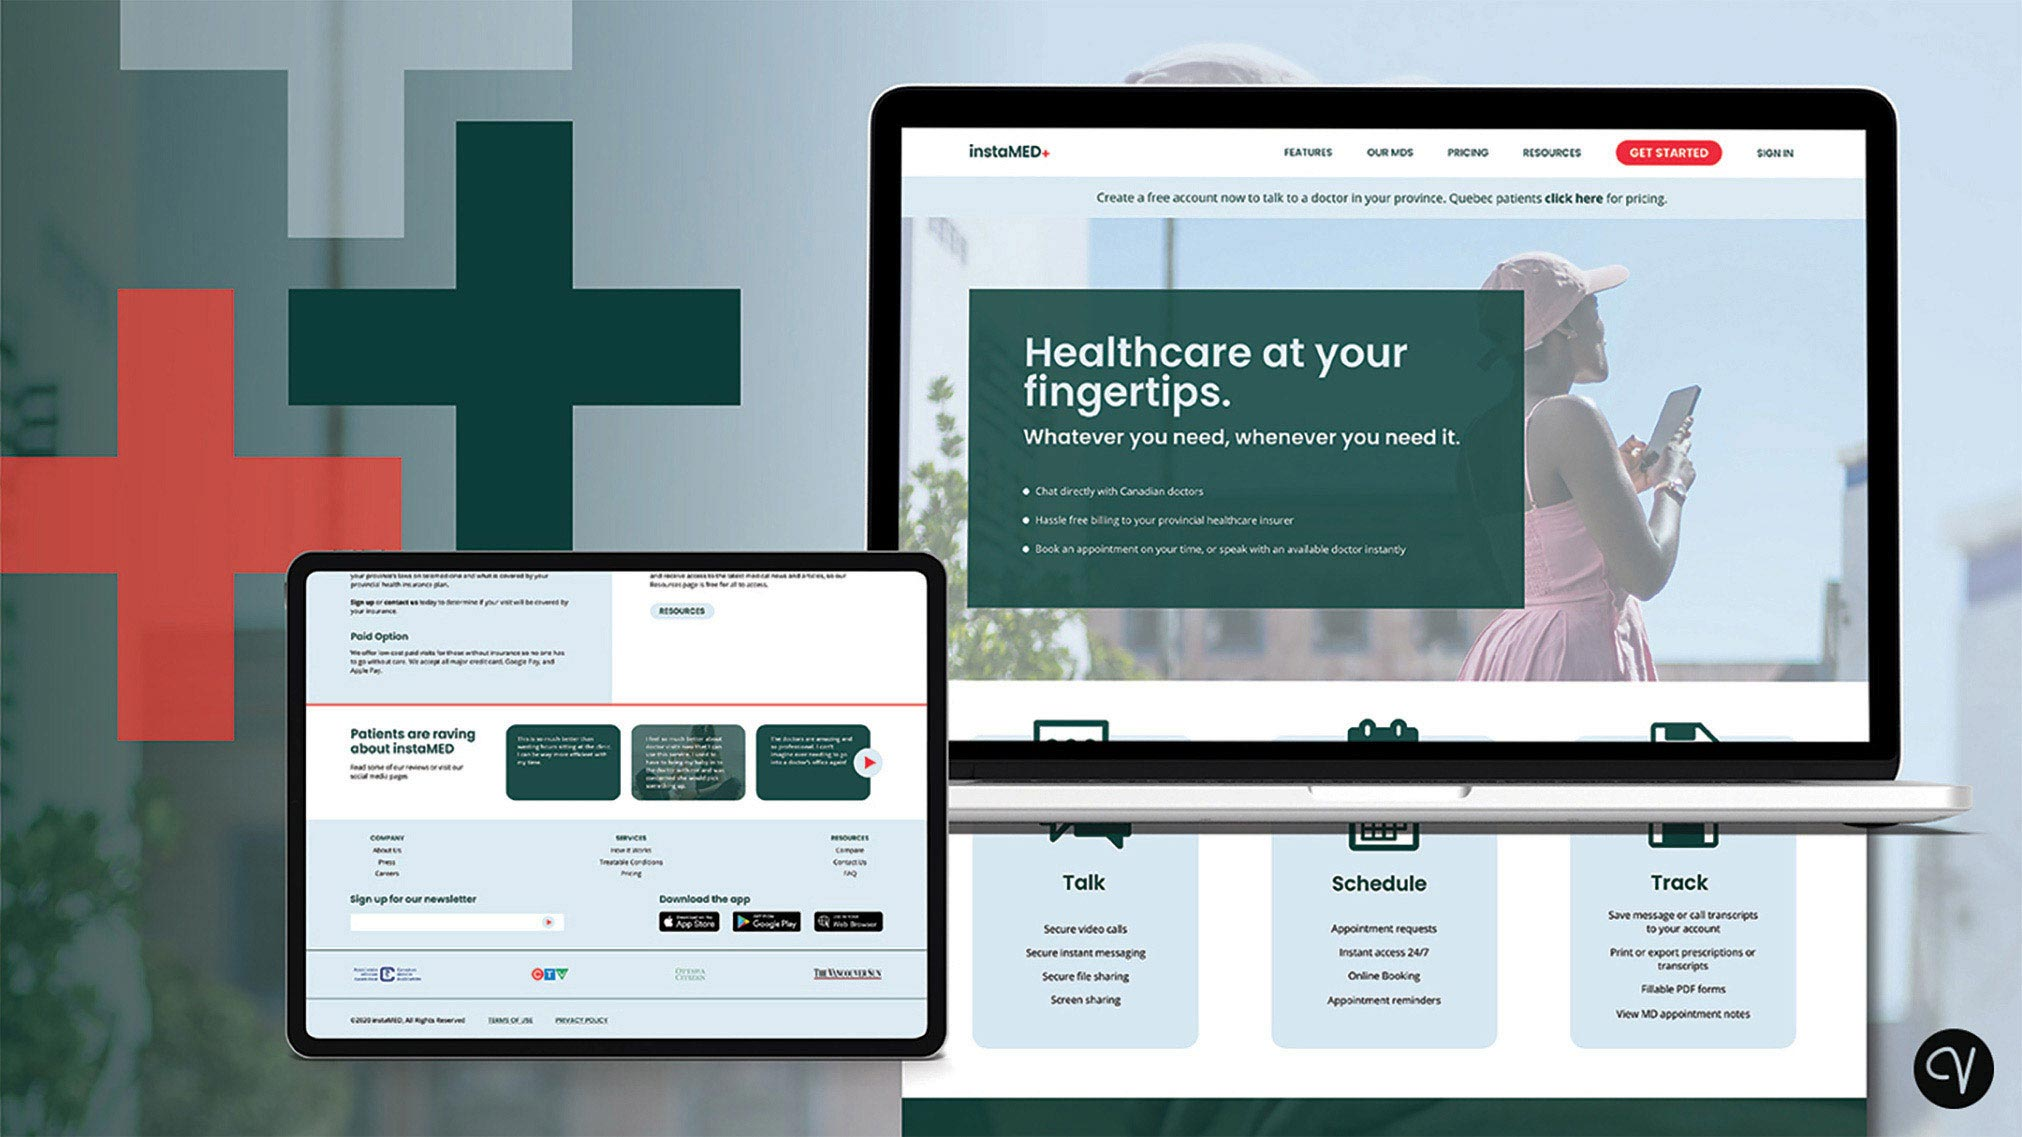 Prior to COVID-19, this SaaS concept was created for a fictional at-home healthcare company called instaMED. Recently, it was redesigned with better UI and UX in mind.